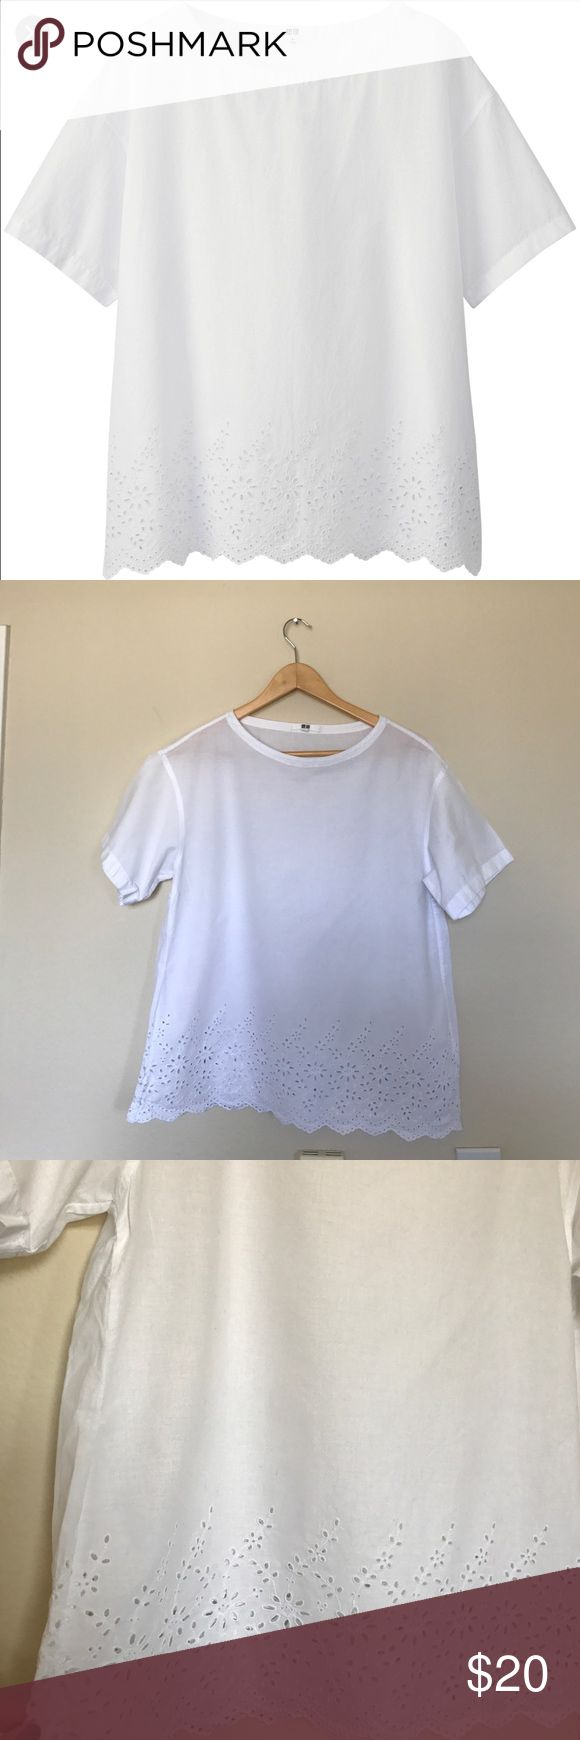 Uniqlo Eyelet White Short Sleeve Shirt Uniqlo Eyelet White Short Sleeve Shirt. Size small. In excellent condition with no signs of wear. Lightweight, oversized fit. 100% cotton. Bundle to save 20% Uniqlo Tops Tees - Short Sleeve